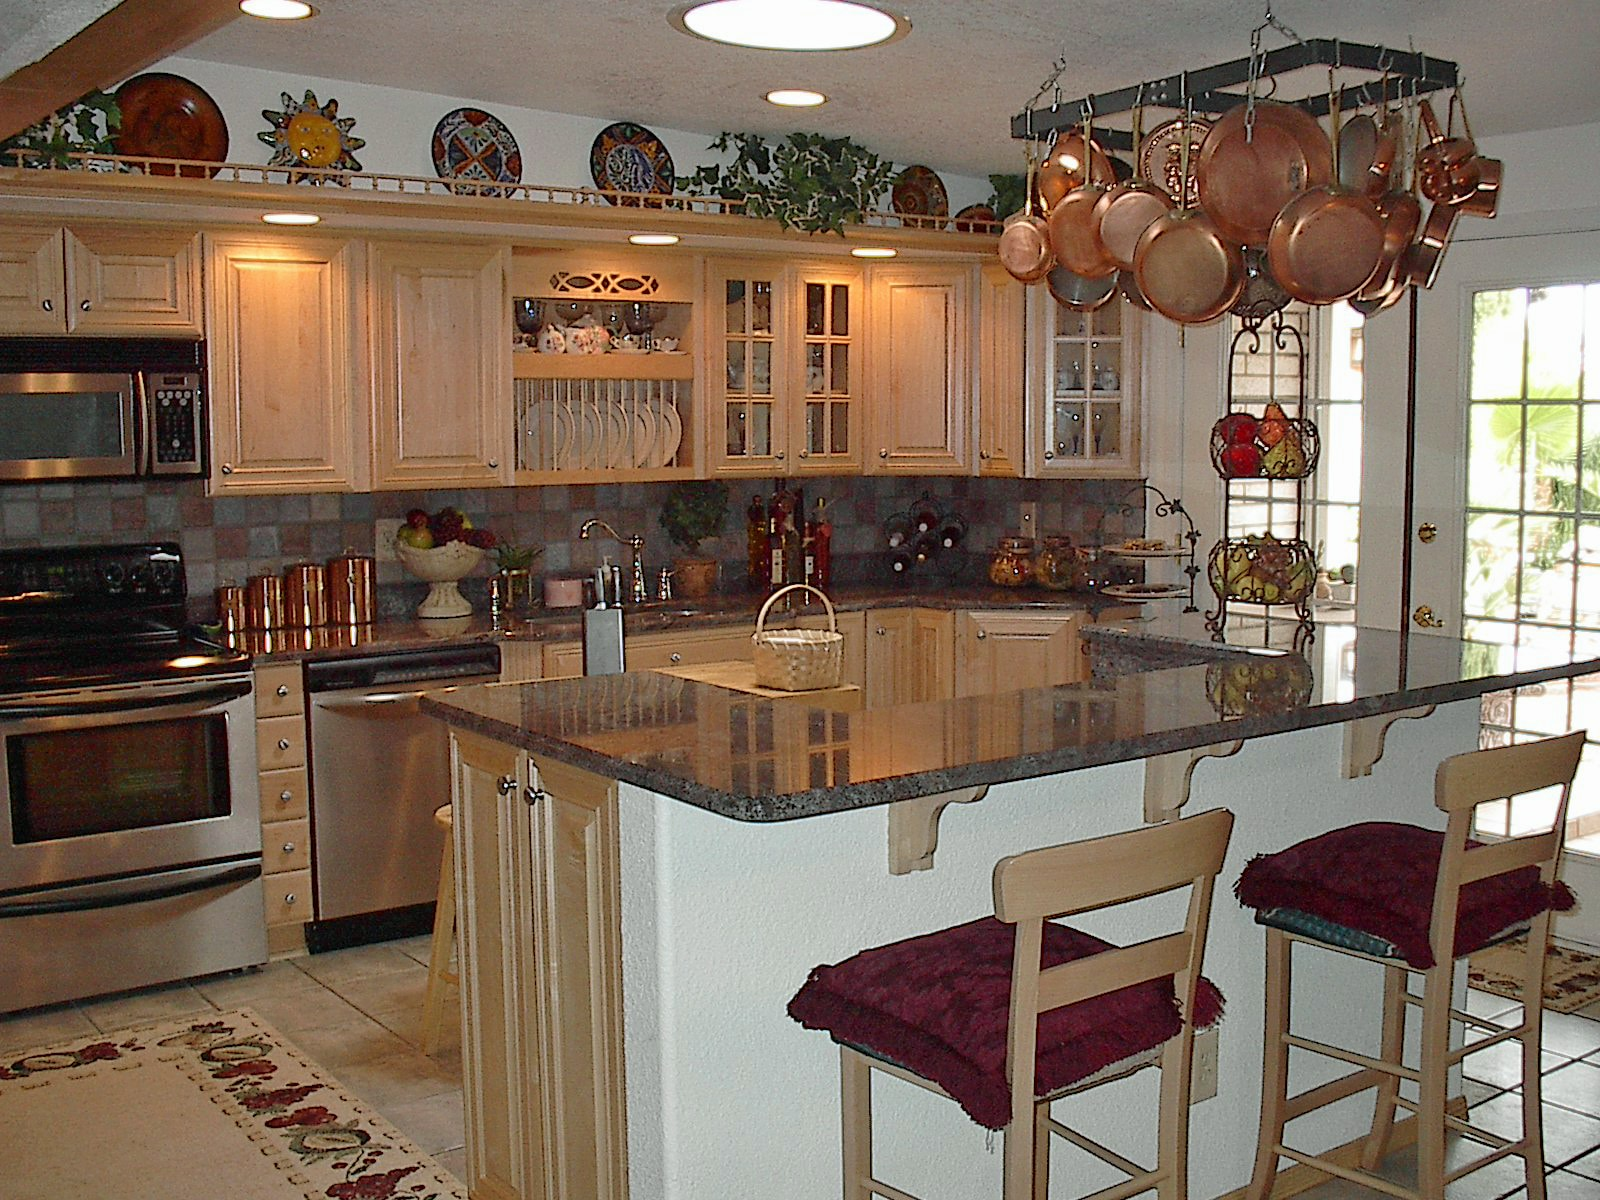 Sierra remodeling kitchen remodel 001b sierra remodeling for J kitchen sierra vista menu